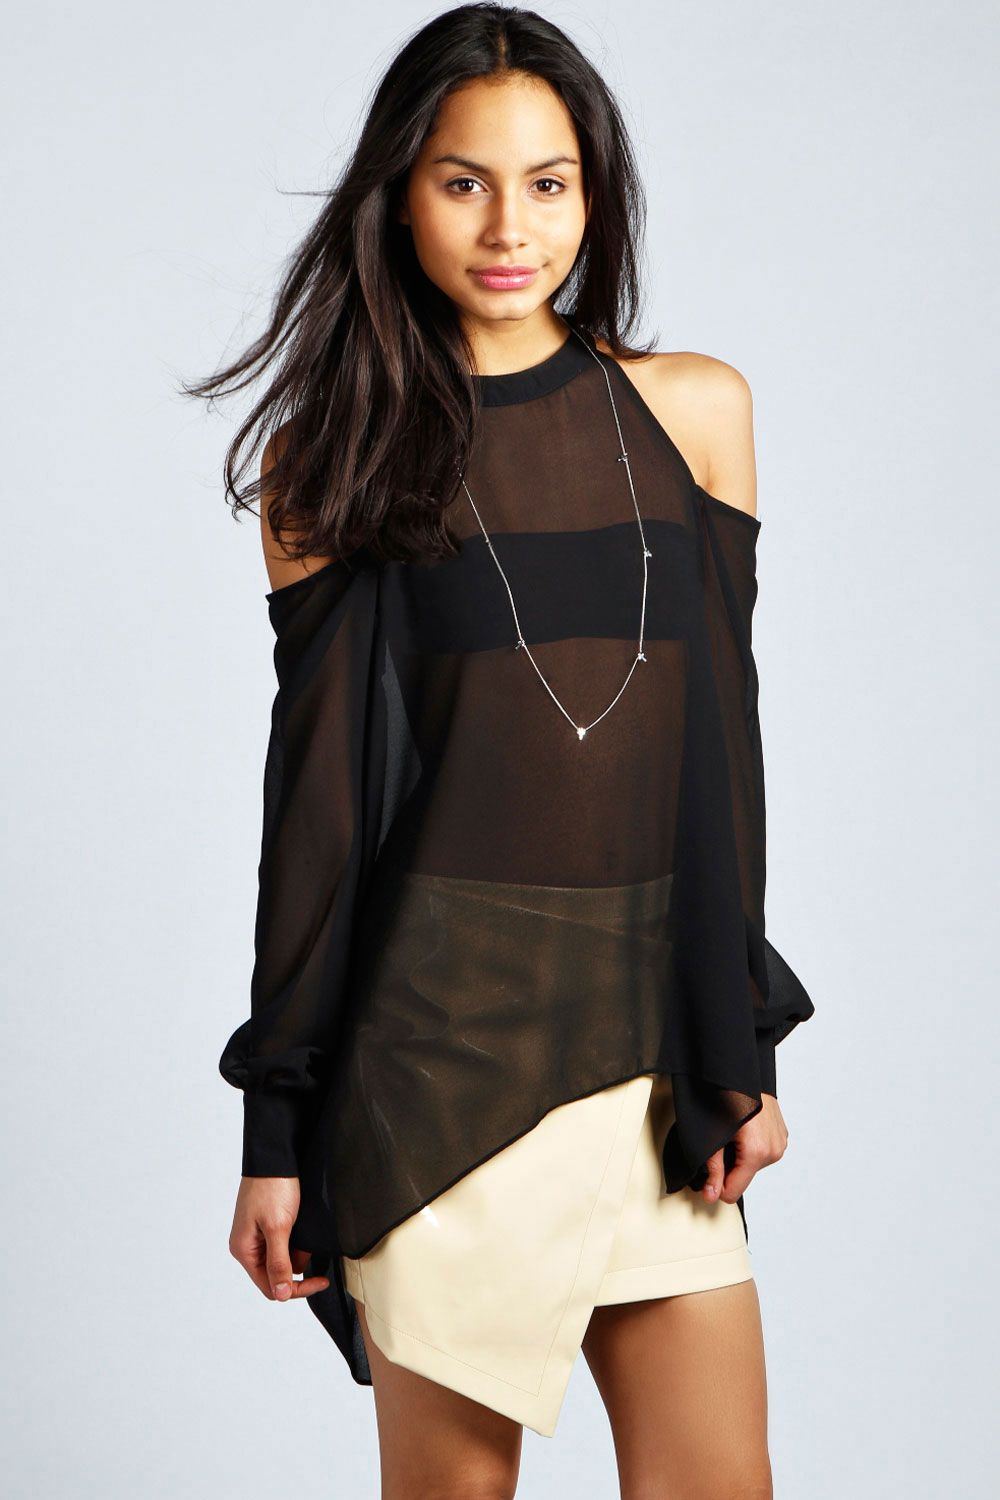 boohoo Isabella High Neck Cut Out Blouse - black product image